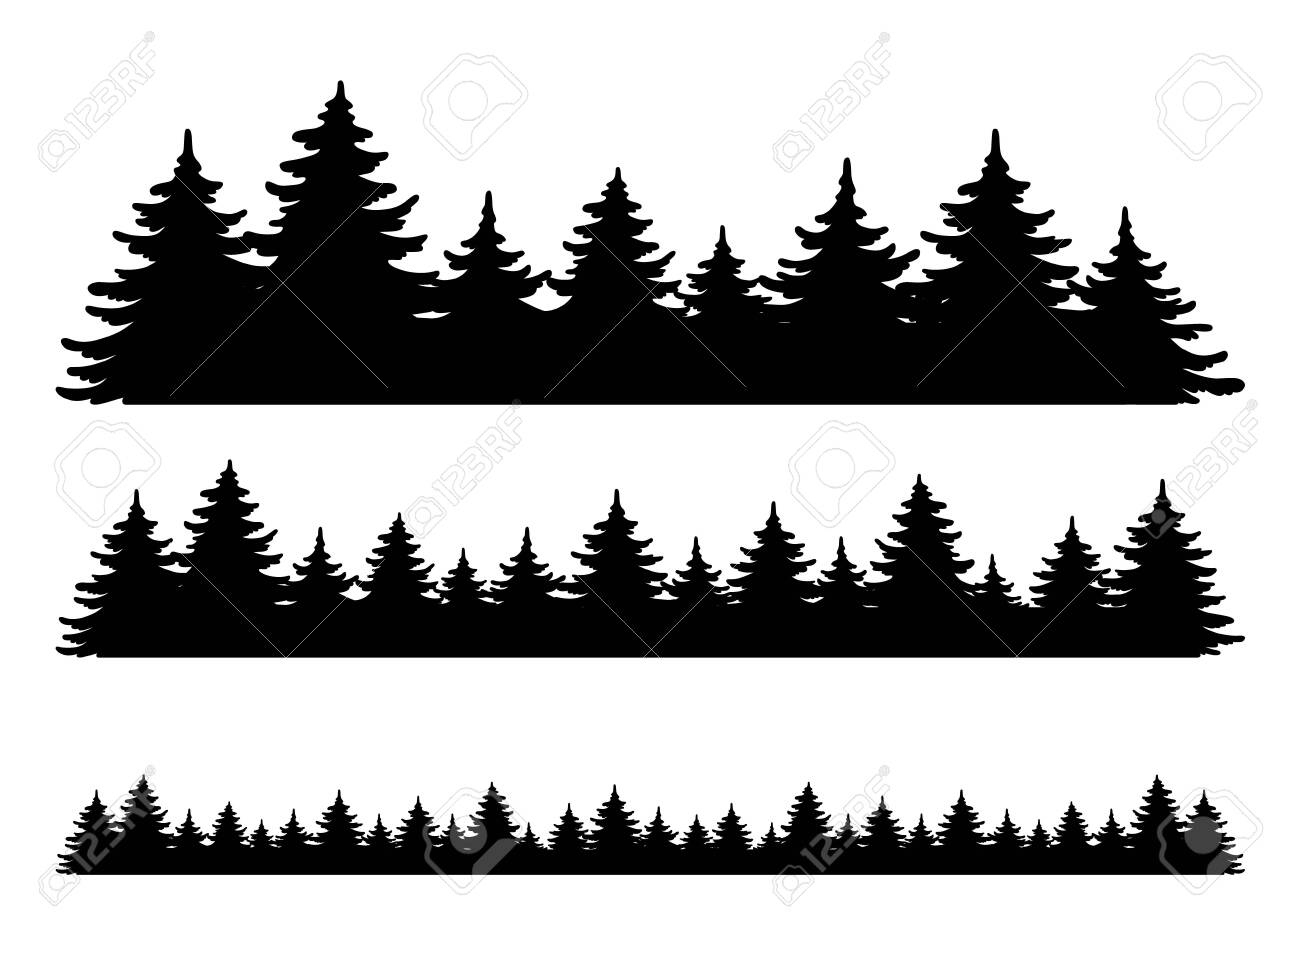 Forest vector shape set. Pine tree landscape collection, panorama. Hand drawn stylized black illustrations isolated on white background. Element for design christmas banner, poster - 134960281